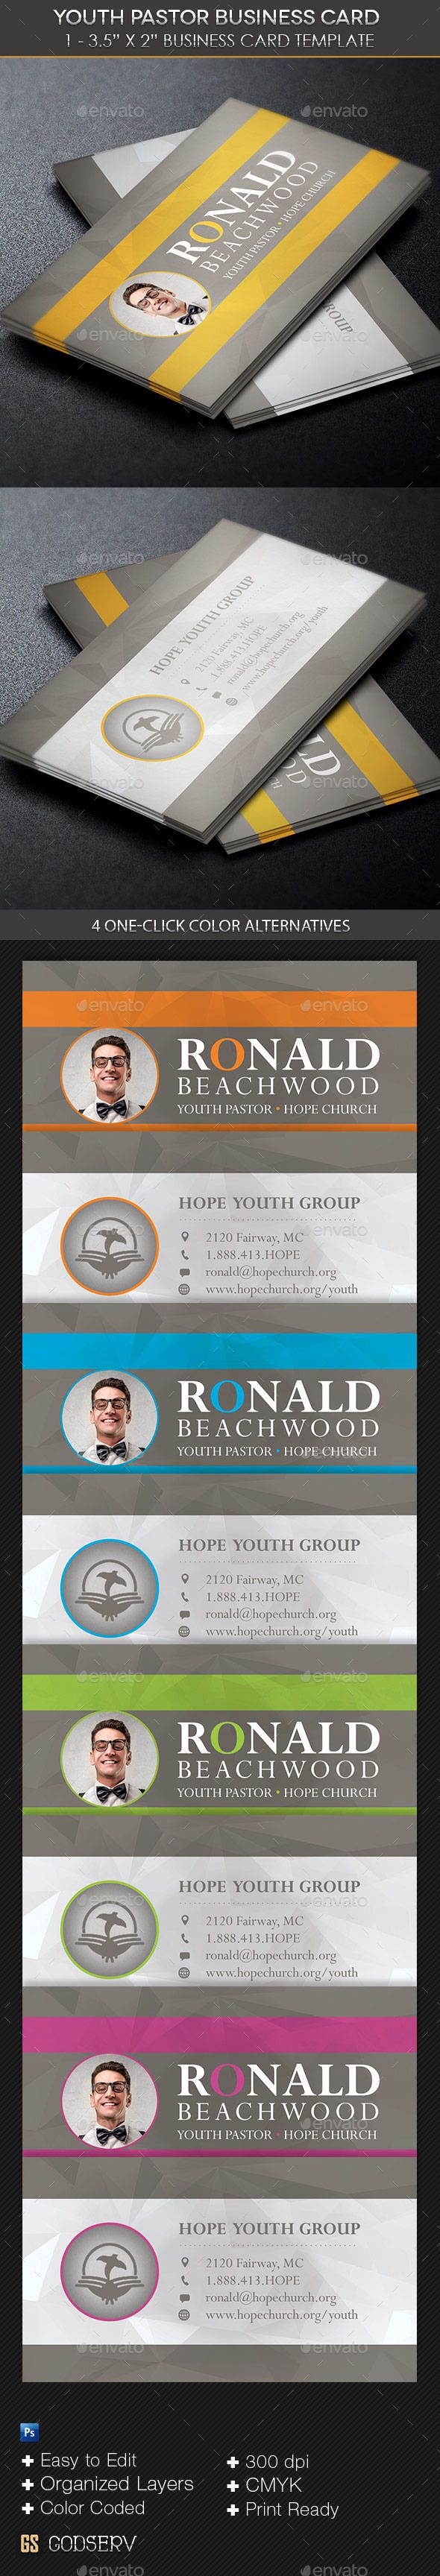 10 best church business card images on pinterest